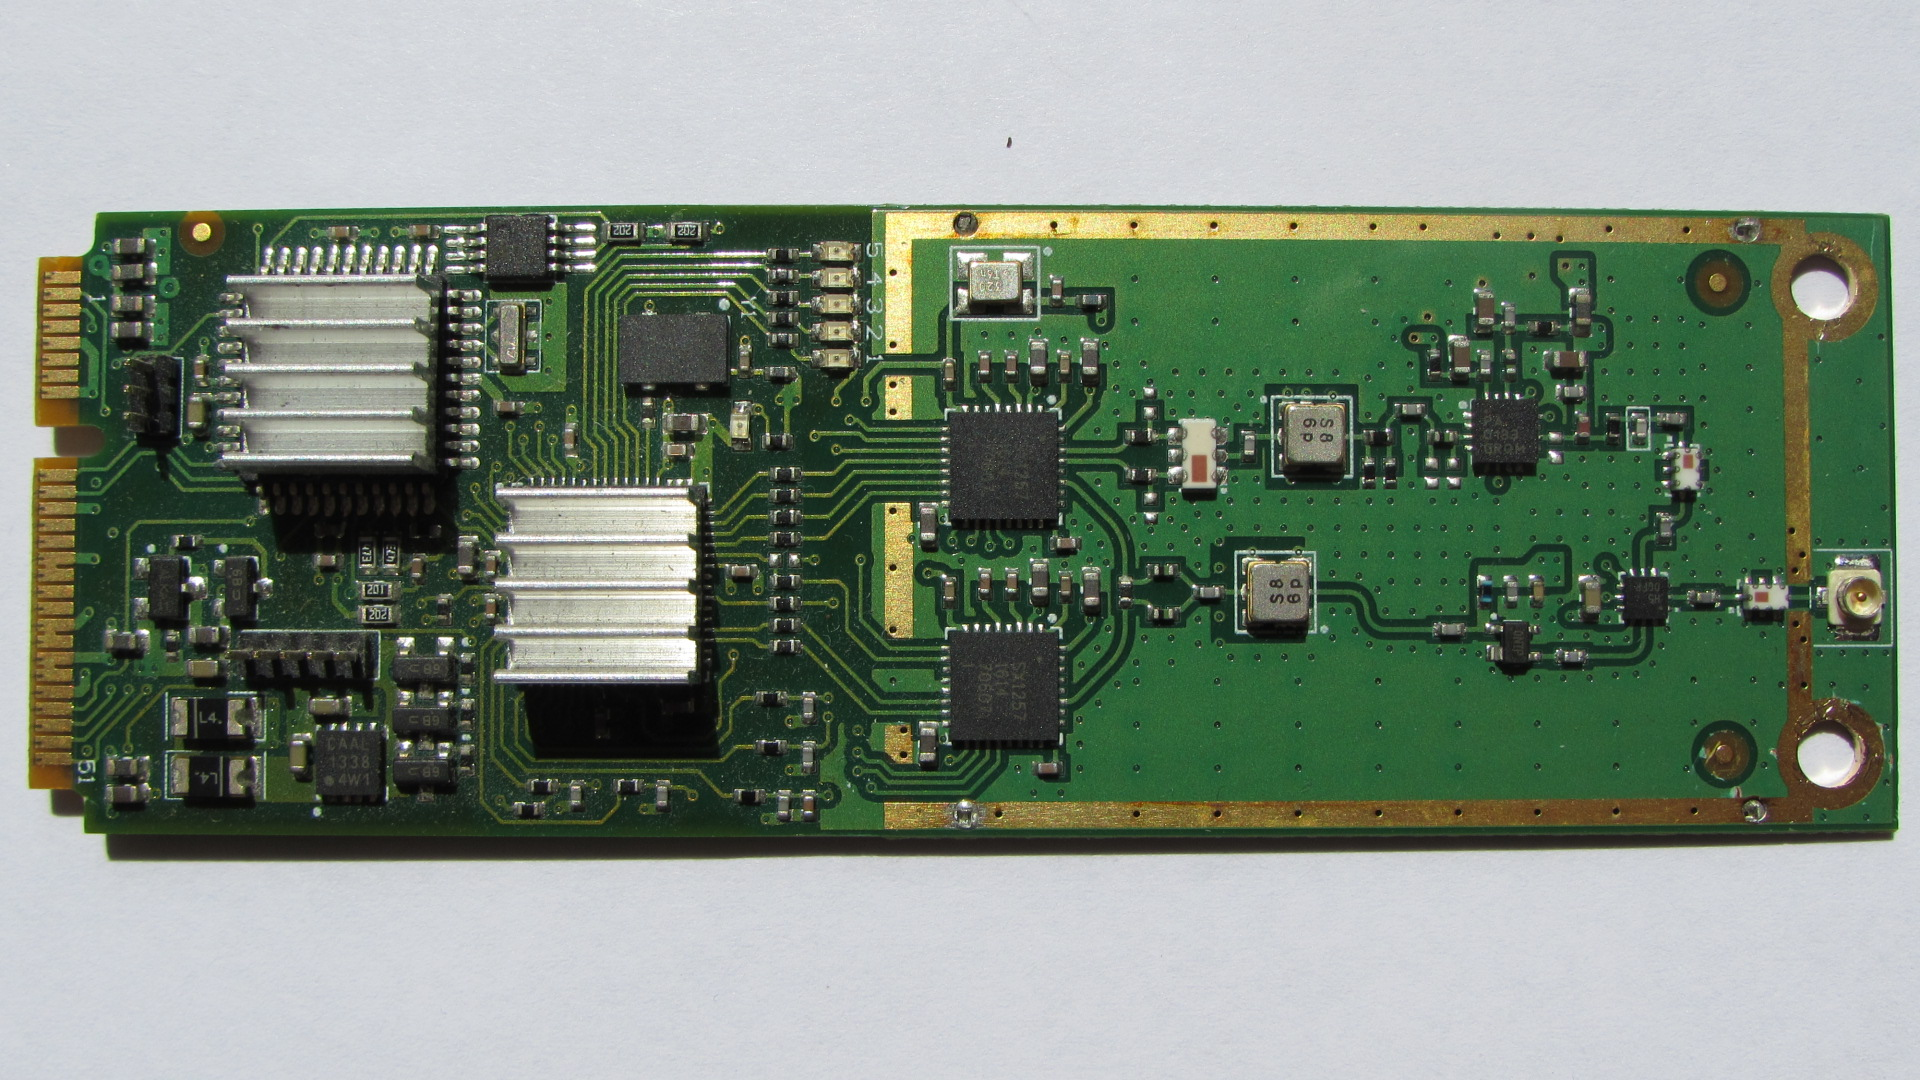 hight resolution of finally my questions are if the ttn gw lg9271 rf card is damaged because it doesn t have the tvs diode as the semtech reference design what components do